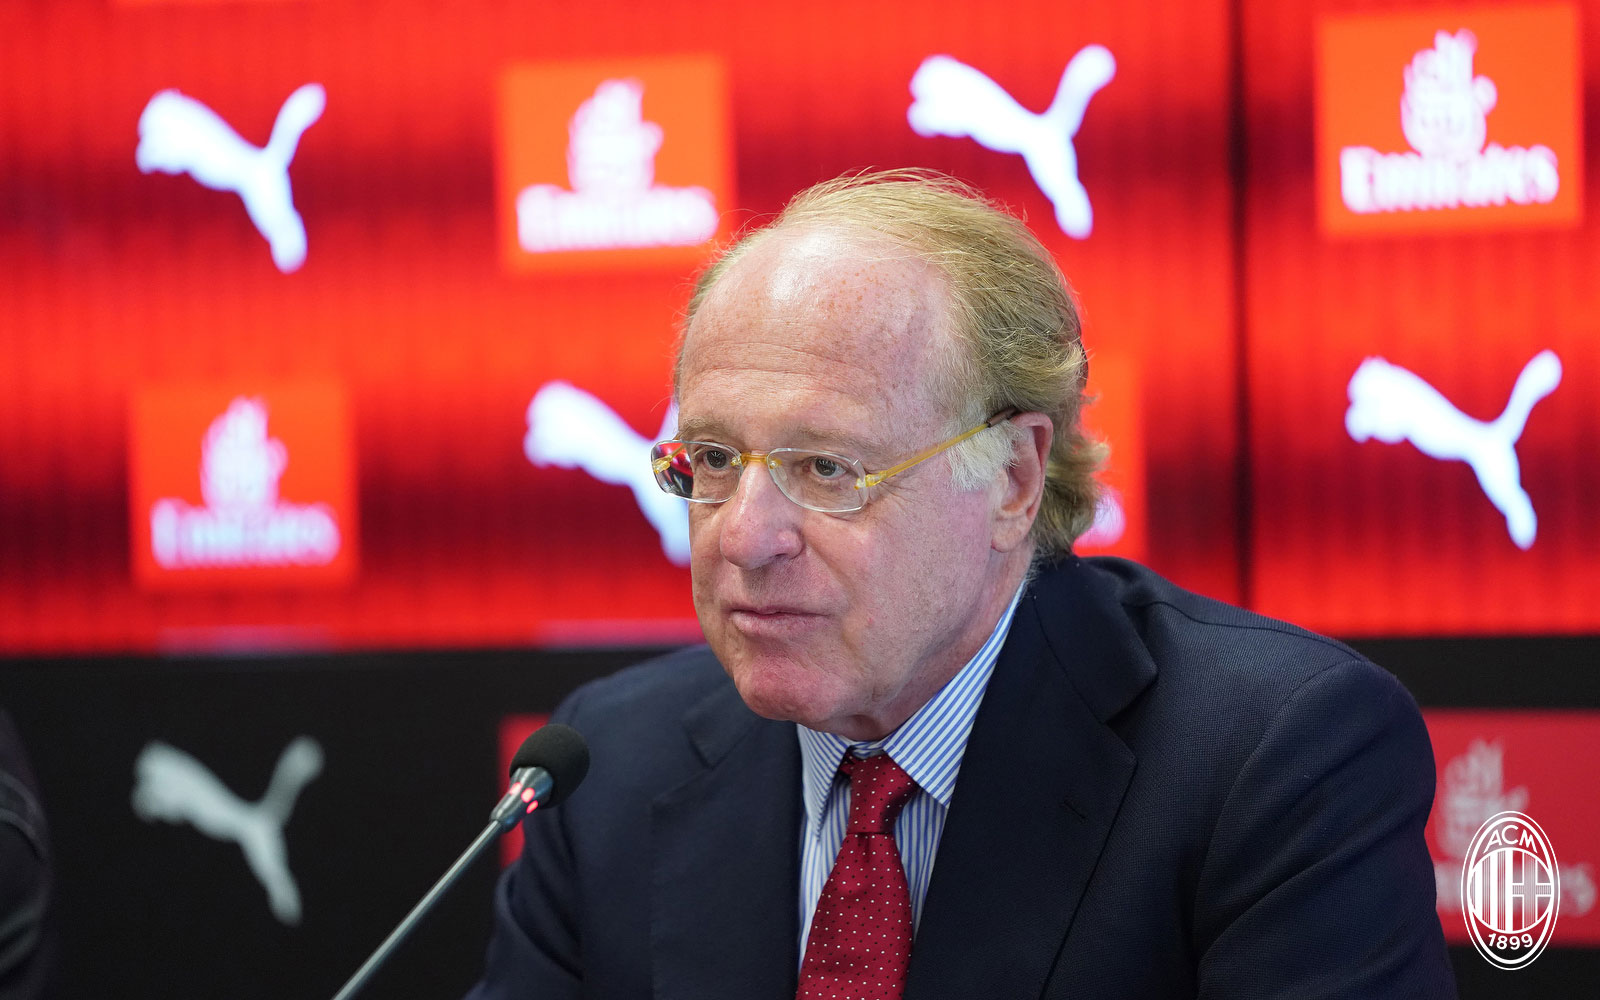 Paolo Scaroni during a press conference on August 17, 2018. (@acmilan.com)